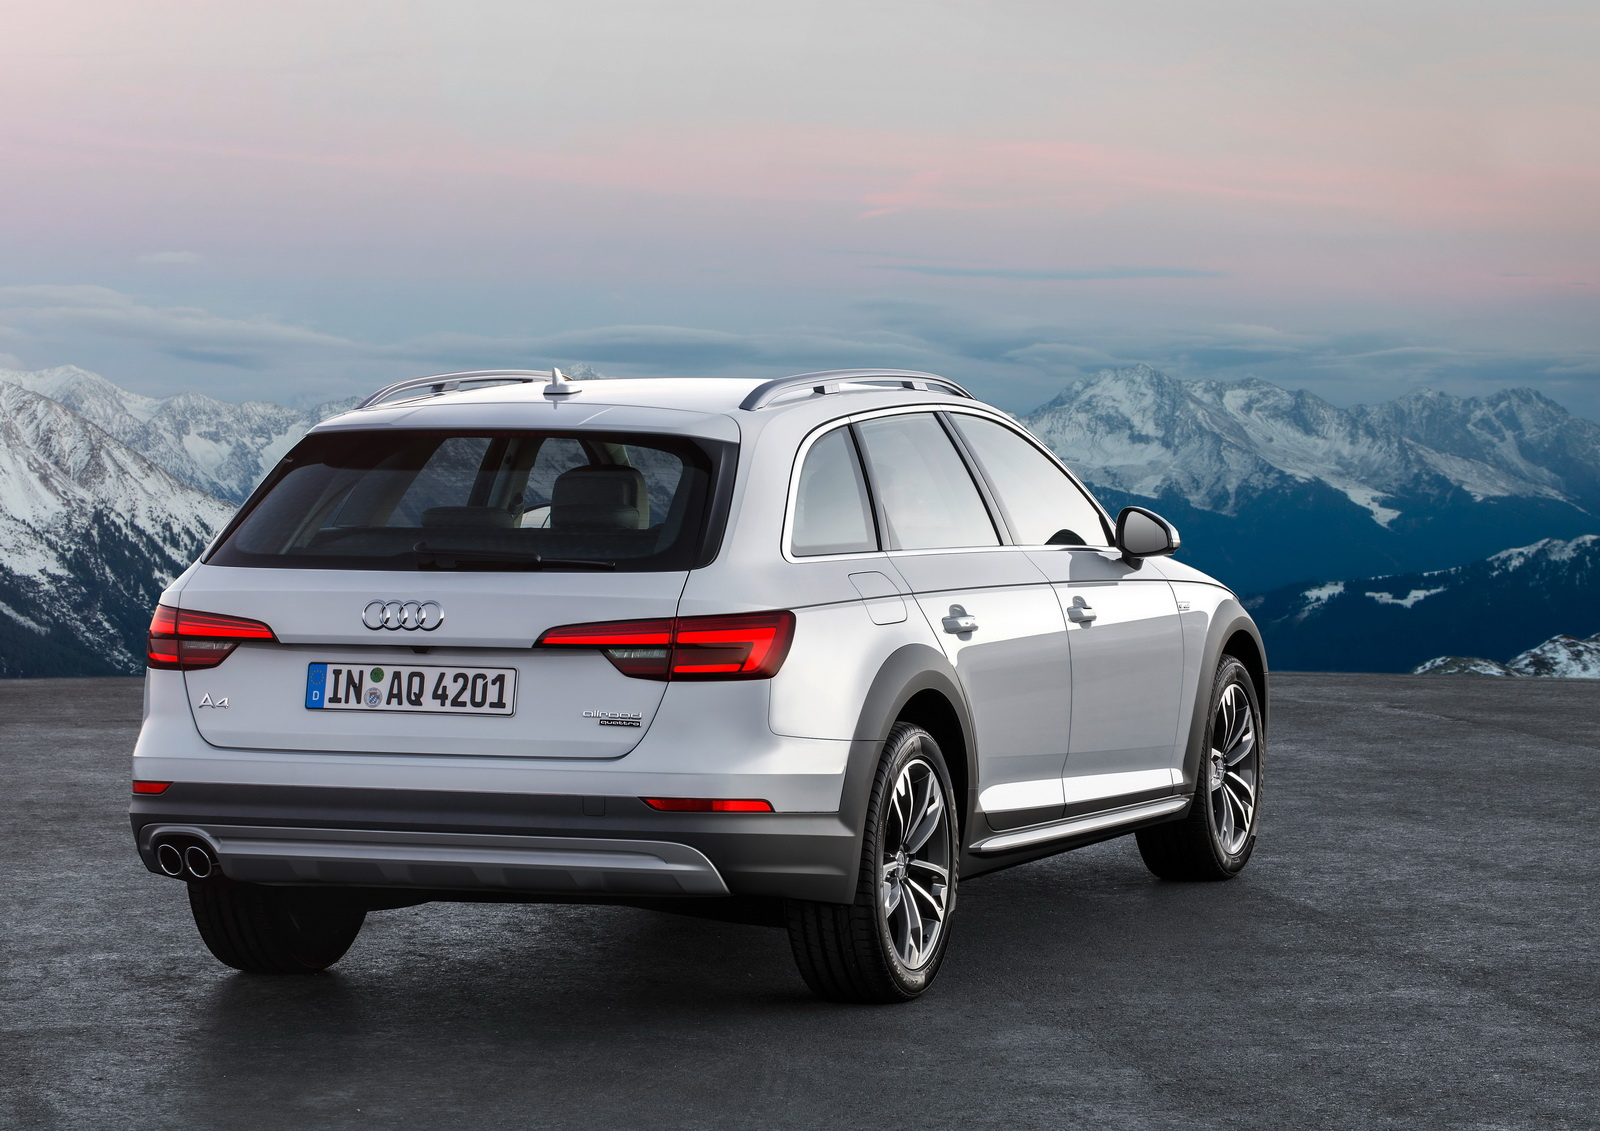 2017 audi a4 allroad coming this fall in usa priced from 44 950. Black Bedroom Furniture Sets. Home Design Ideas